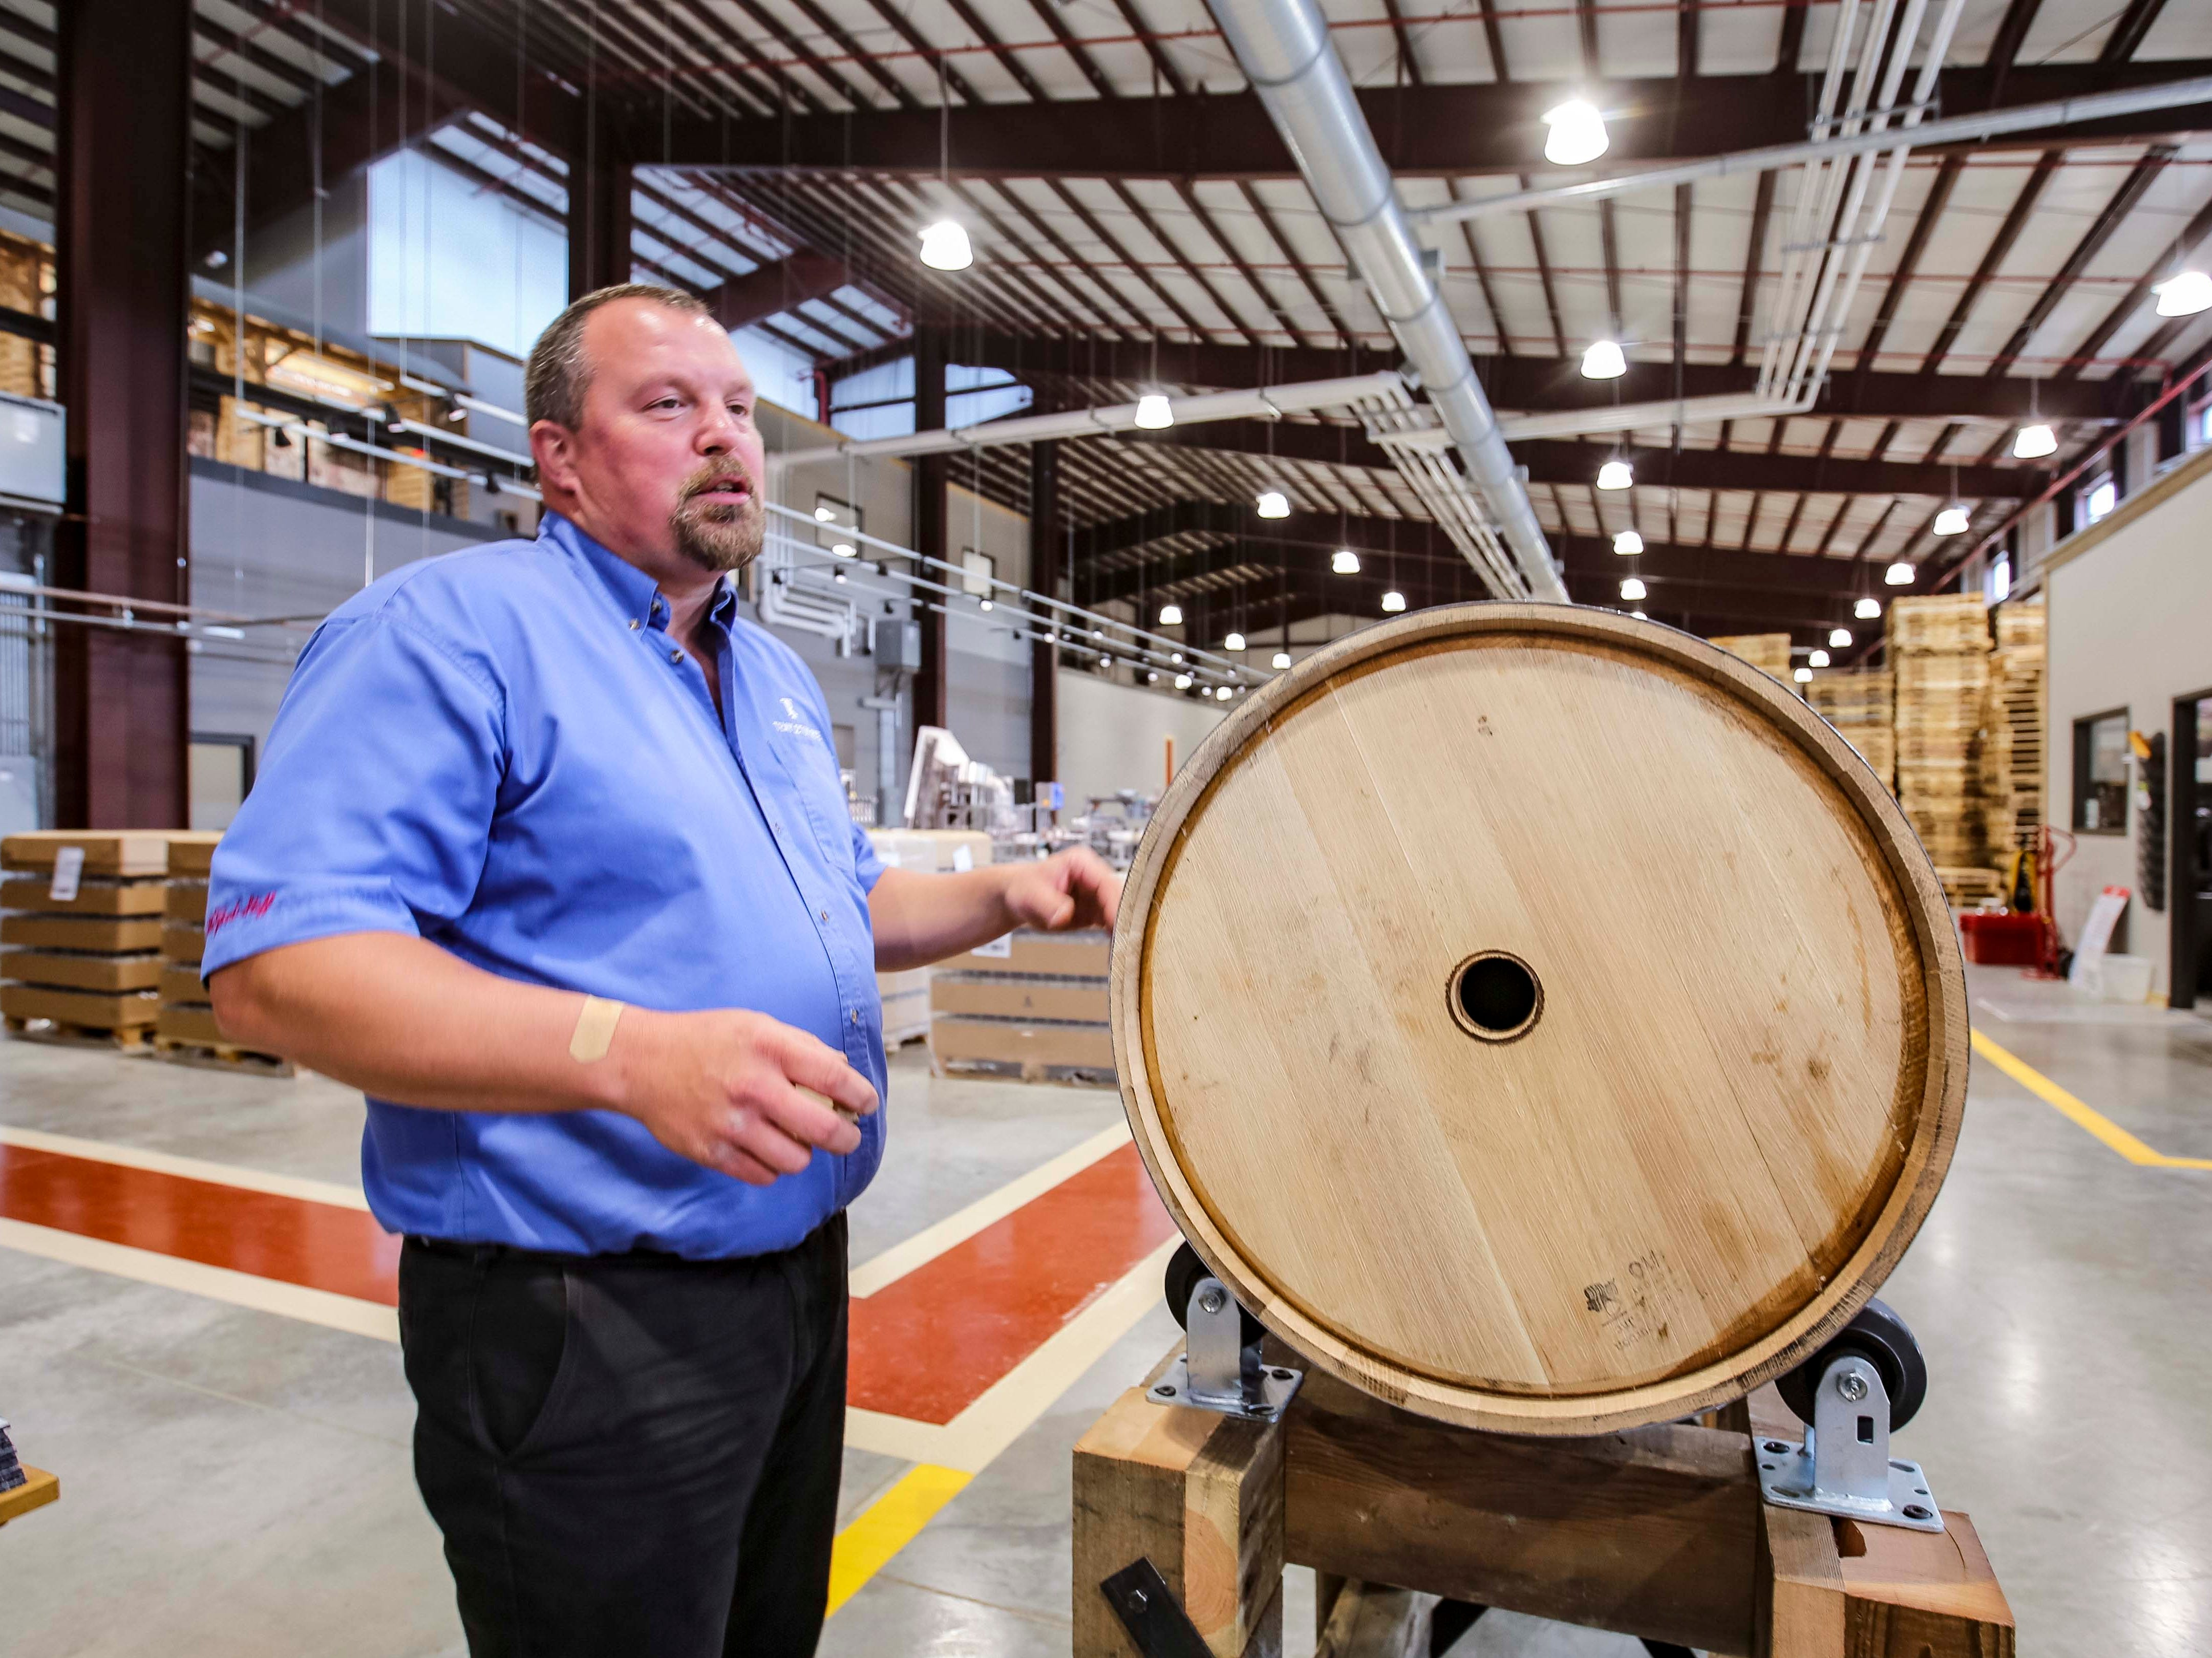 Lester Brown, distiller manager for Templeton Rye in their new $35 million distillery in Templeton, Iowa, shown here Monday, Aug. 6, 2018, featuring a museum and visitor's center.